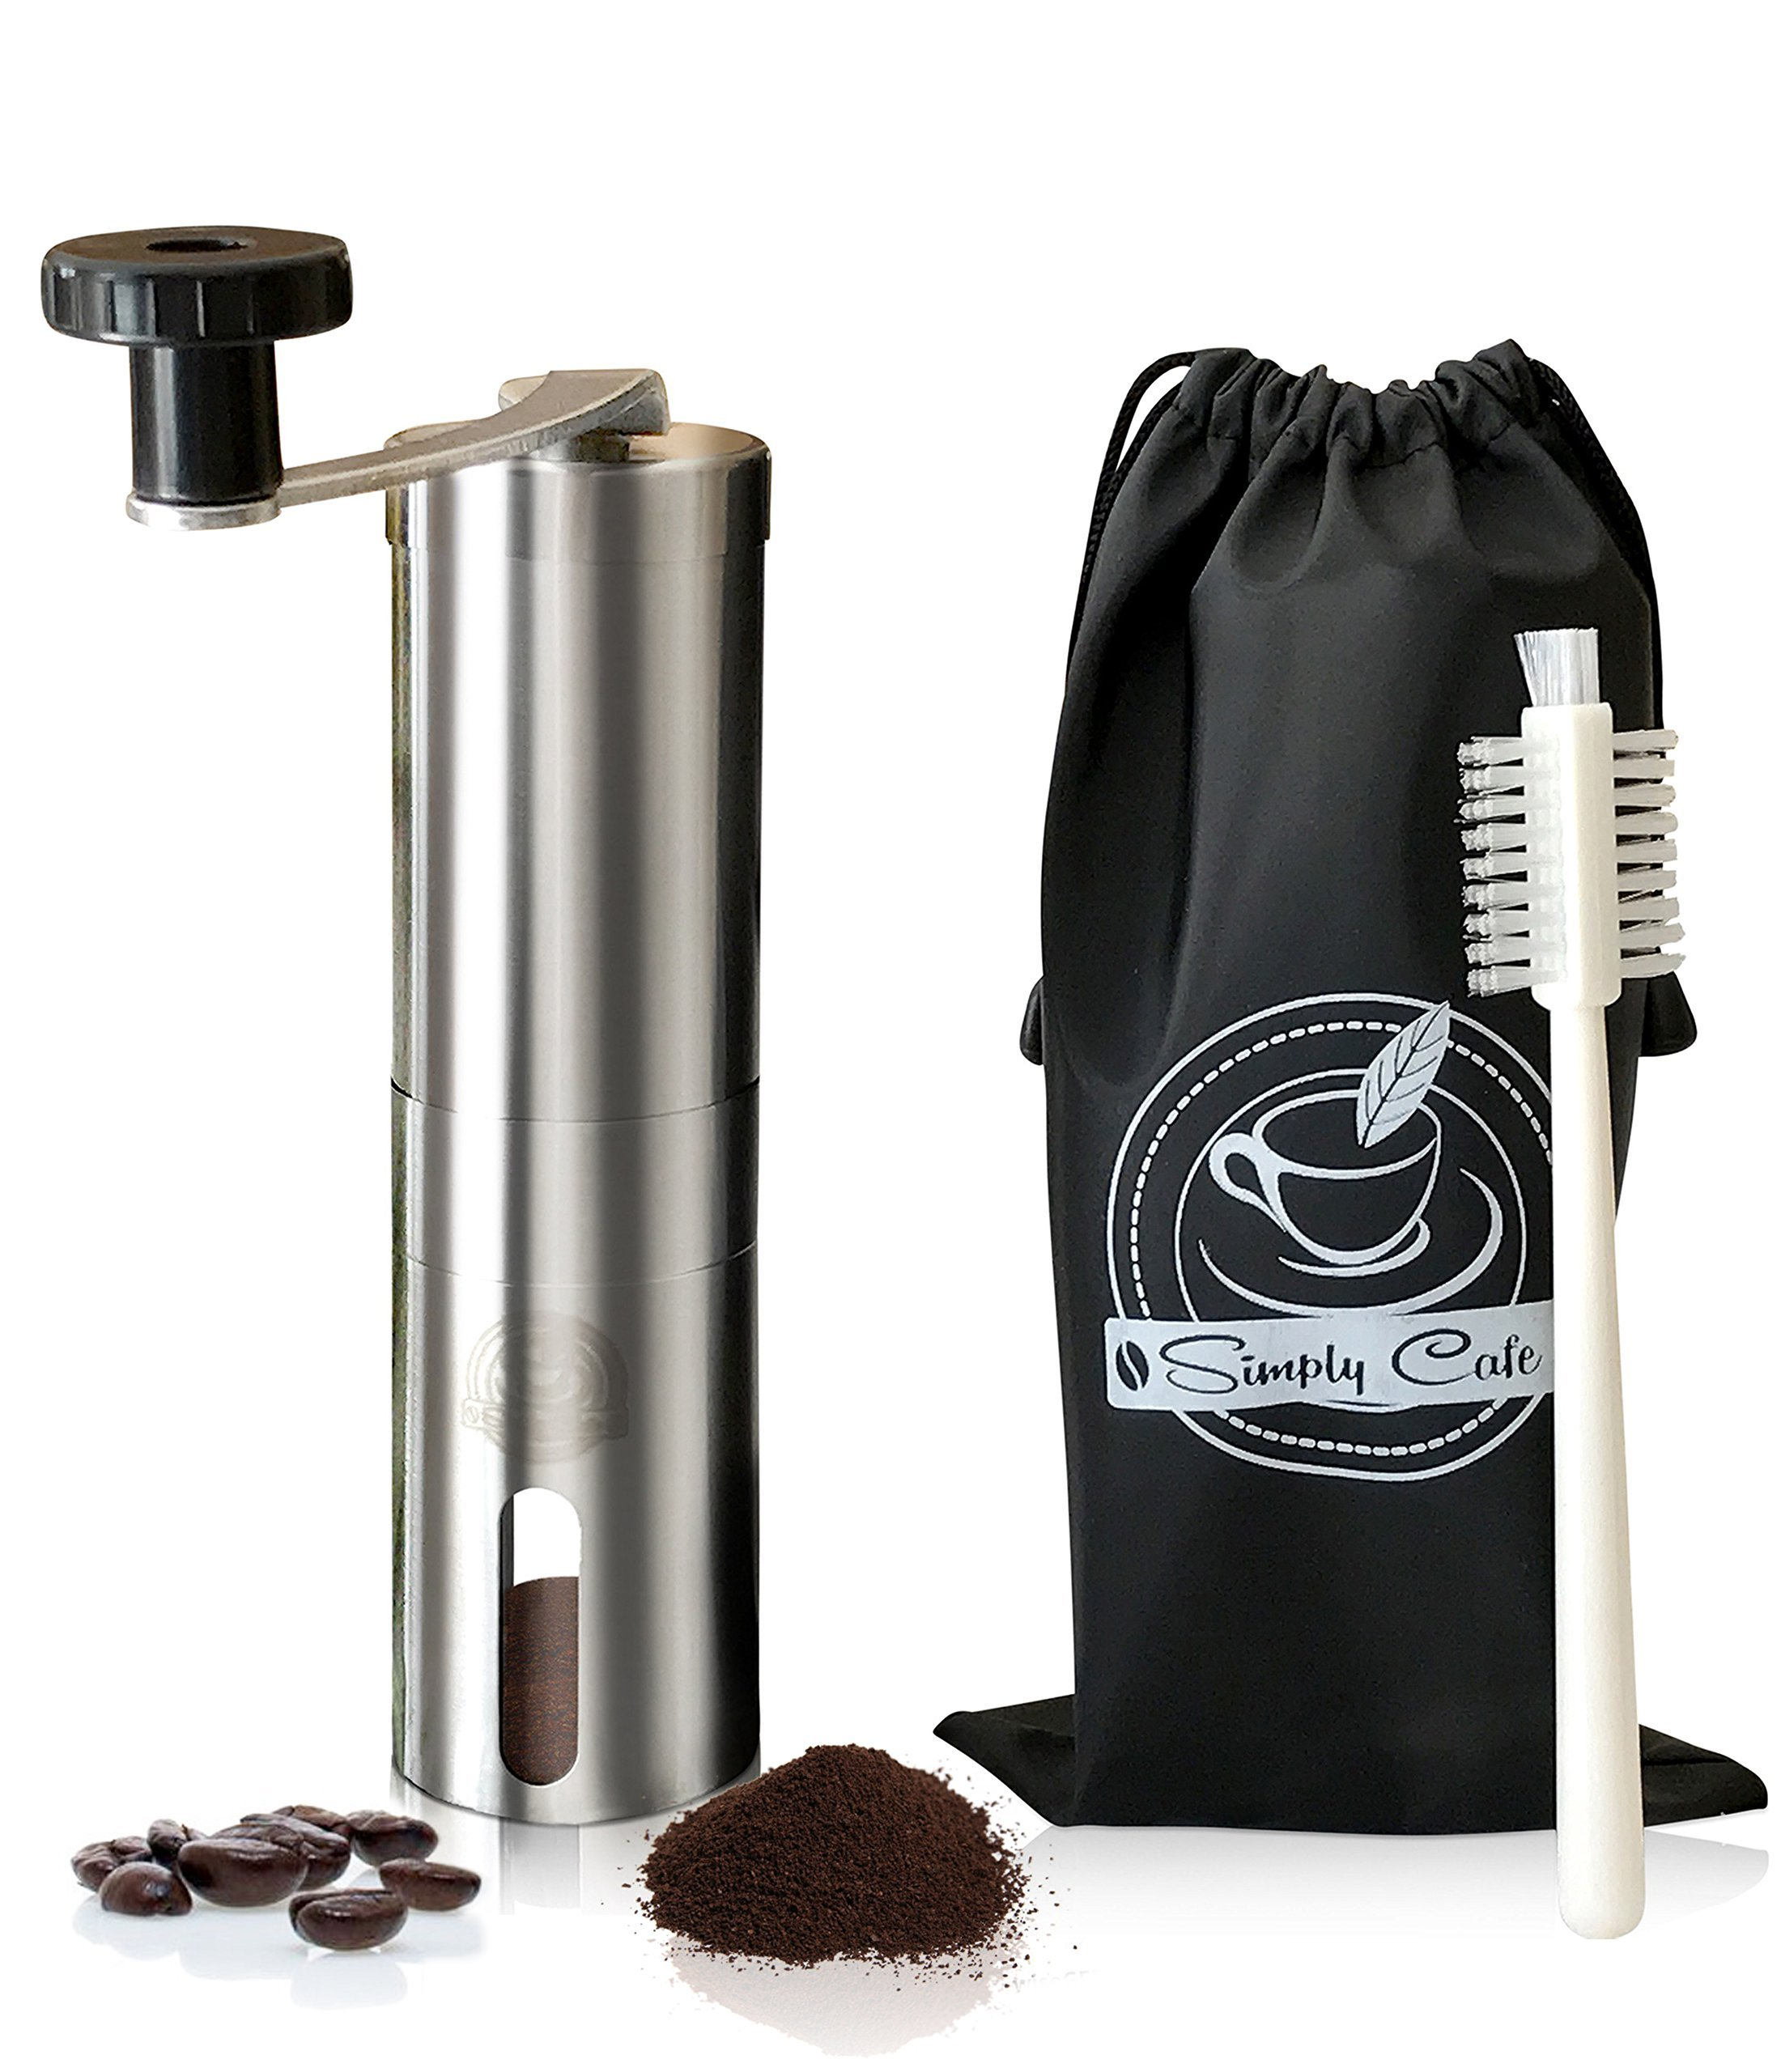 Simply Cafe Manual Coffee Grinder with Cleaning Brush and Travel Bag by Simply Cafe